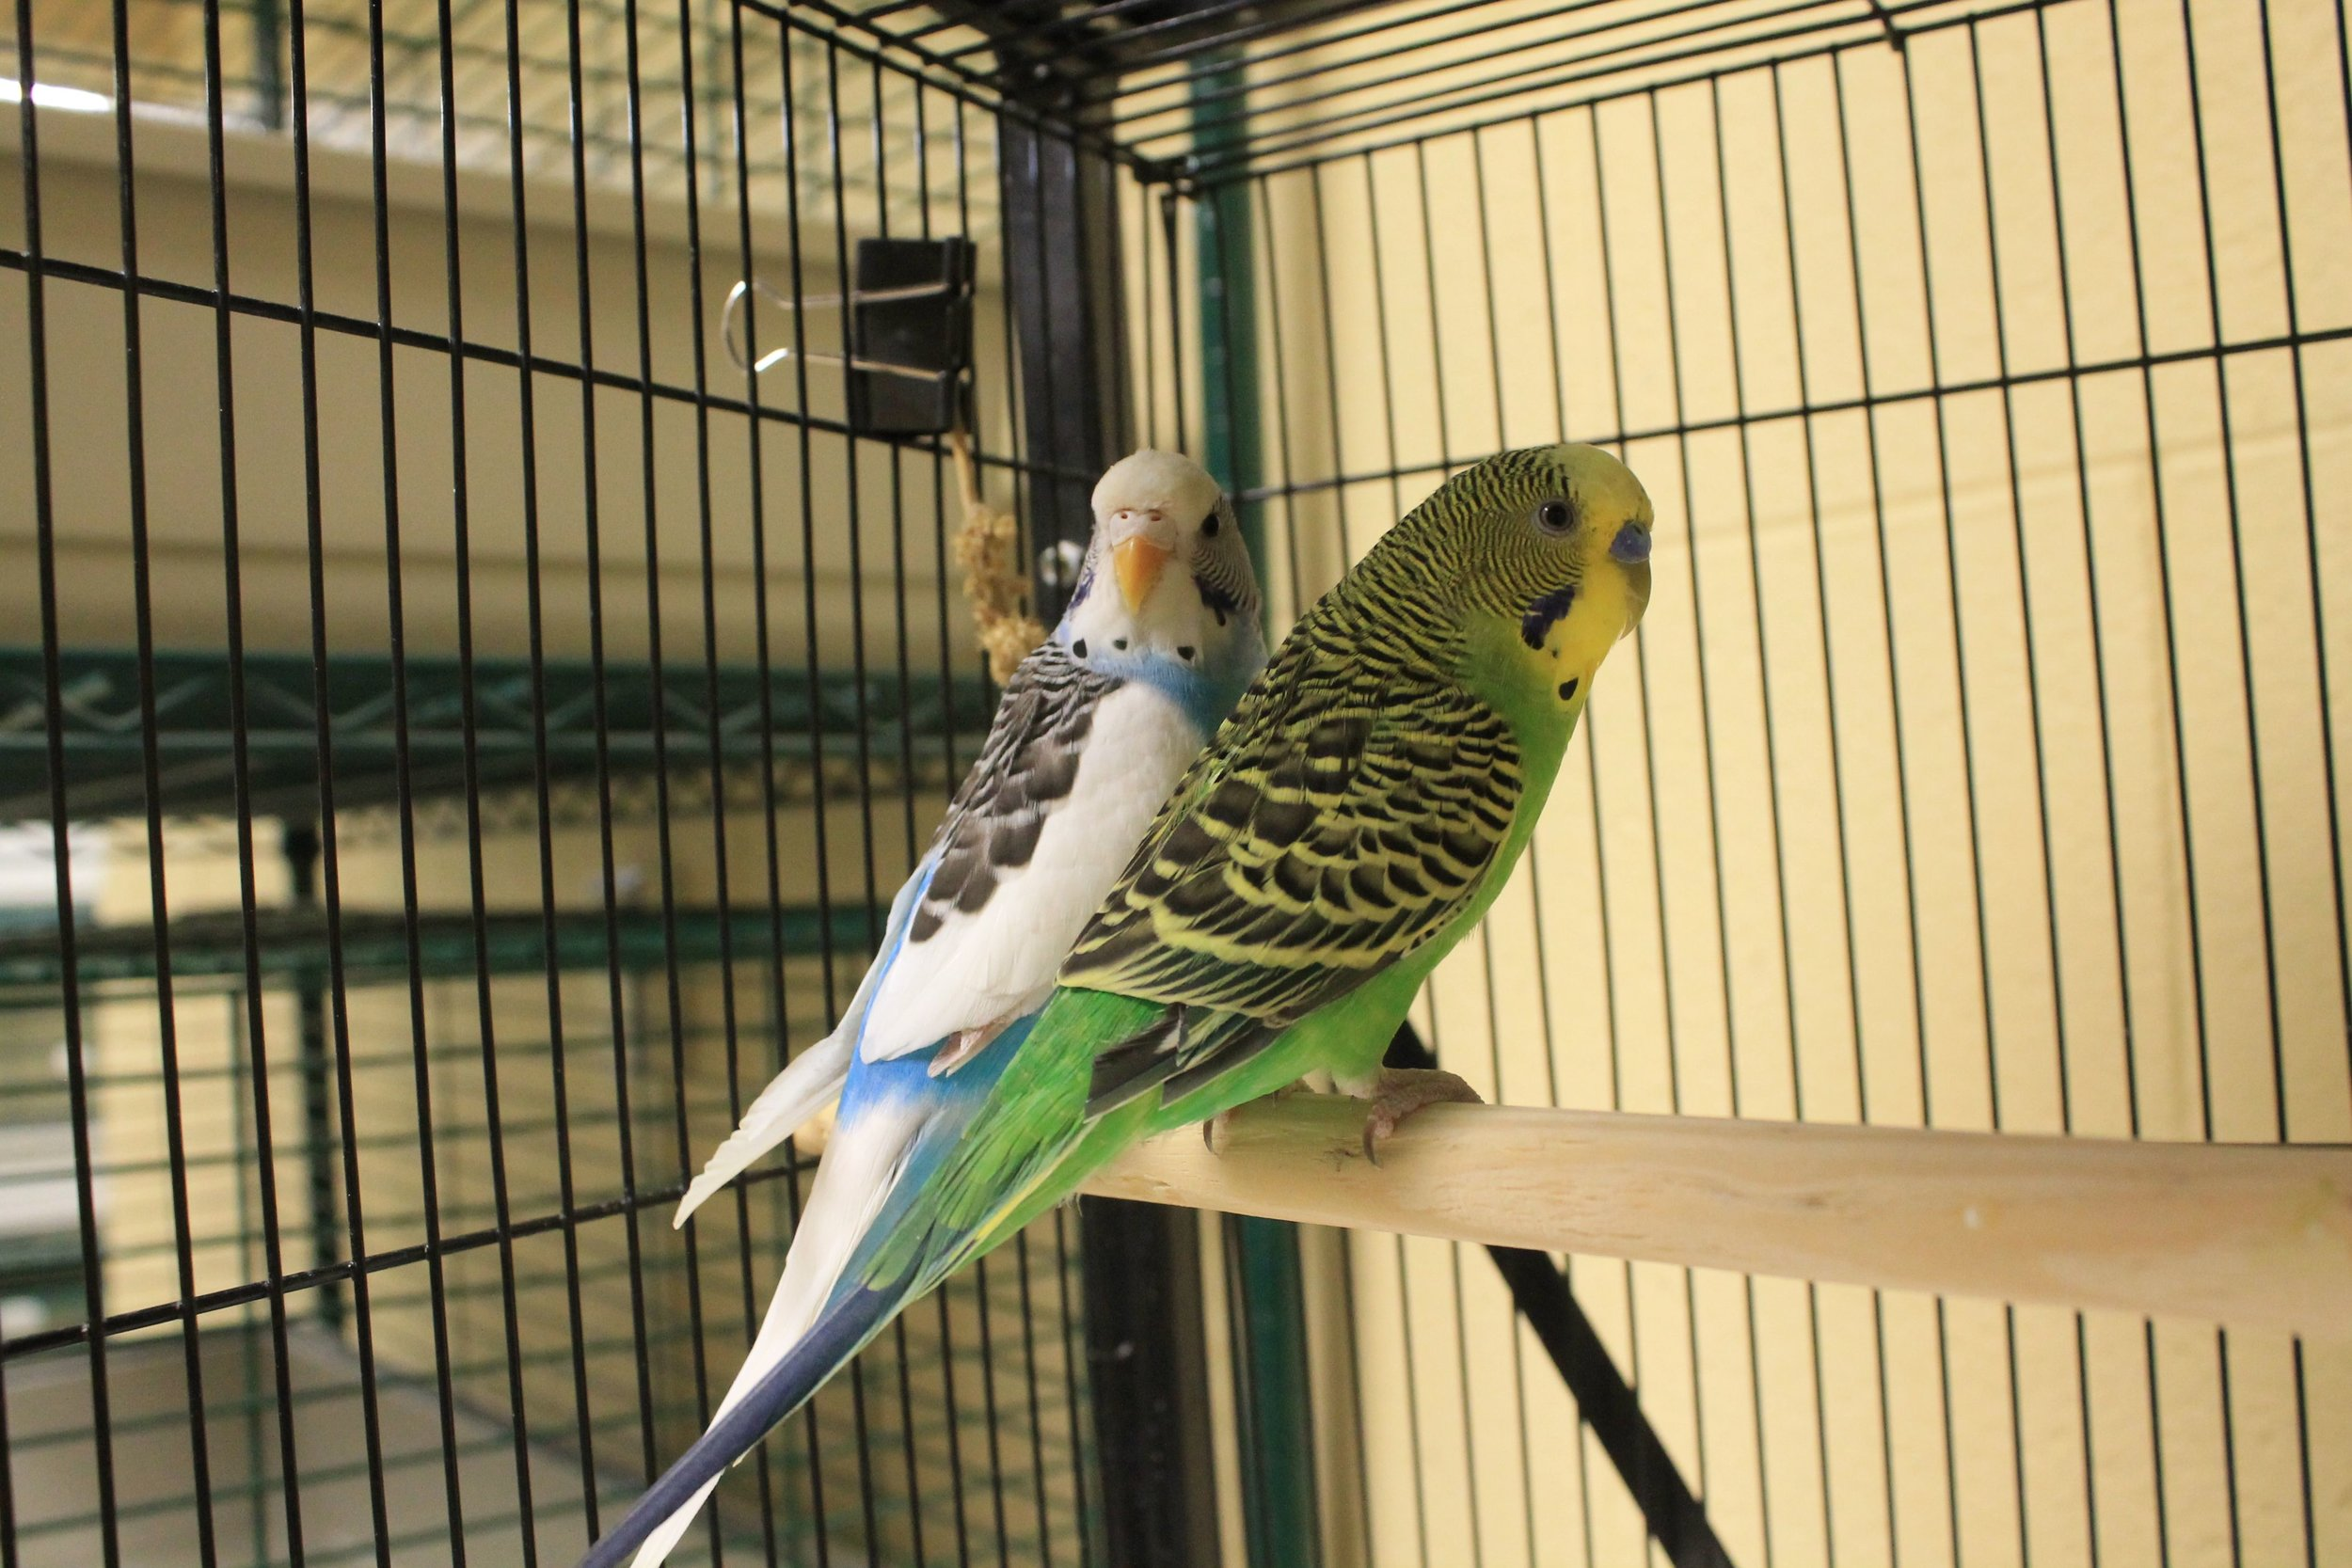 Rett and Scarlet are a pair of loving parakeets in search of a new home together! Their home was displaced when their owner passed away. They love to sit side by side on their perches and chit and chat all day!